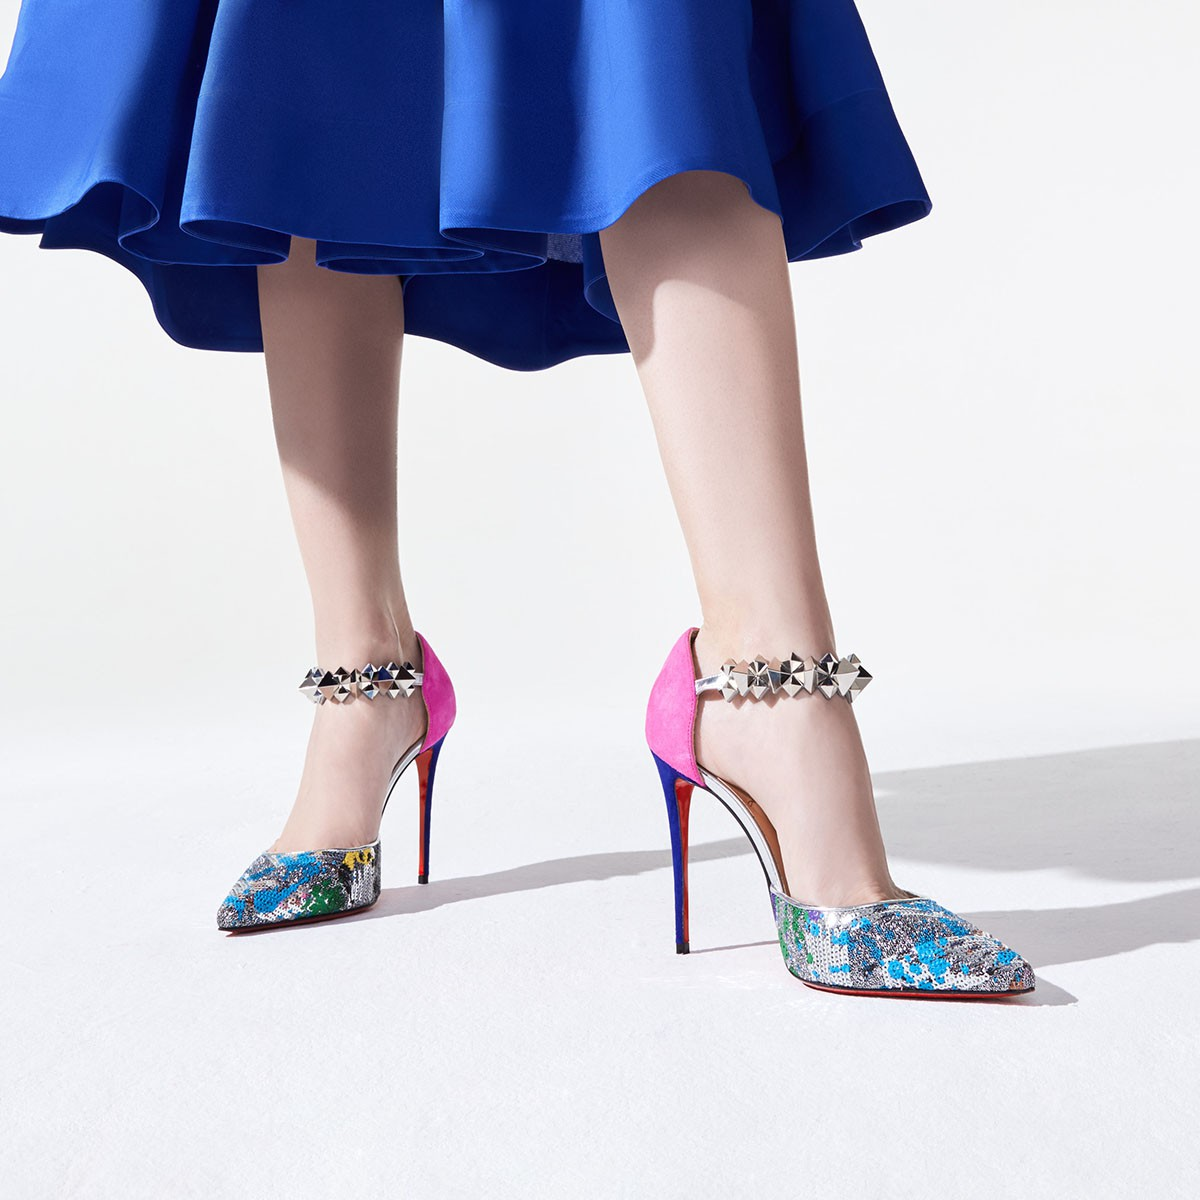 Shoes - Planet Chic - Christian Louboutin